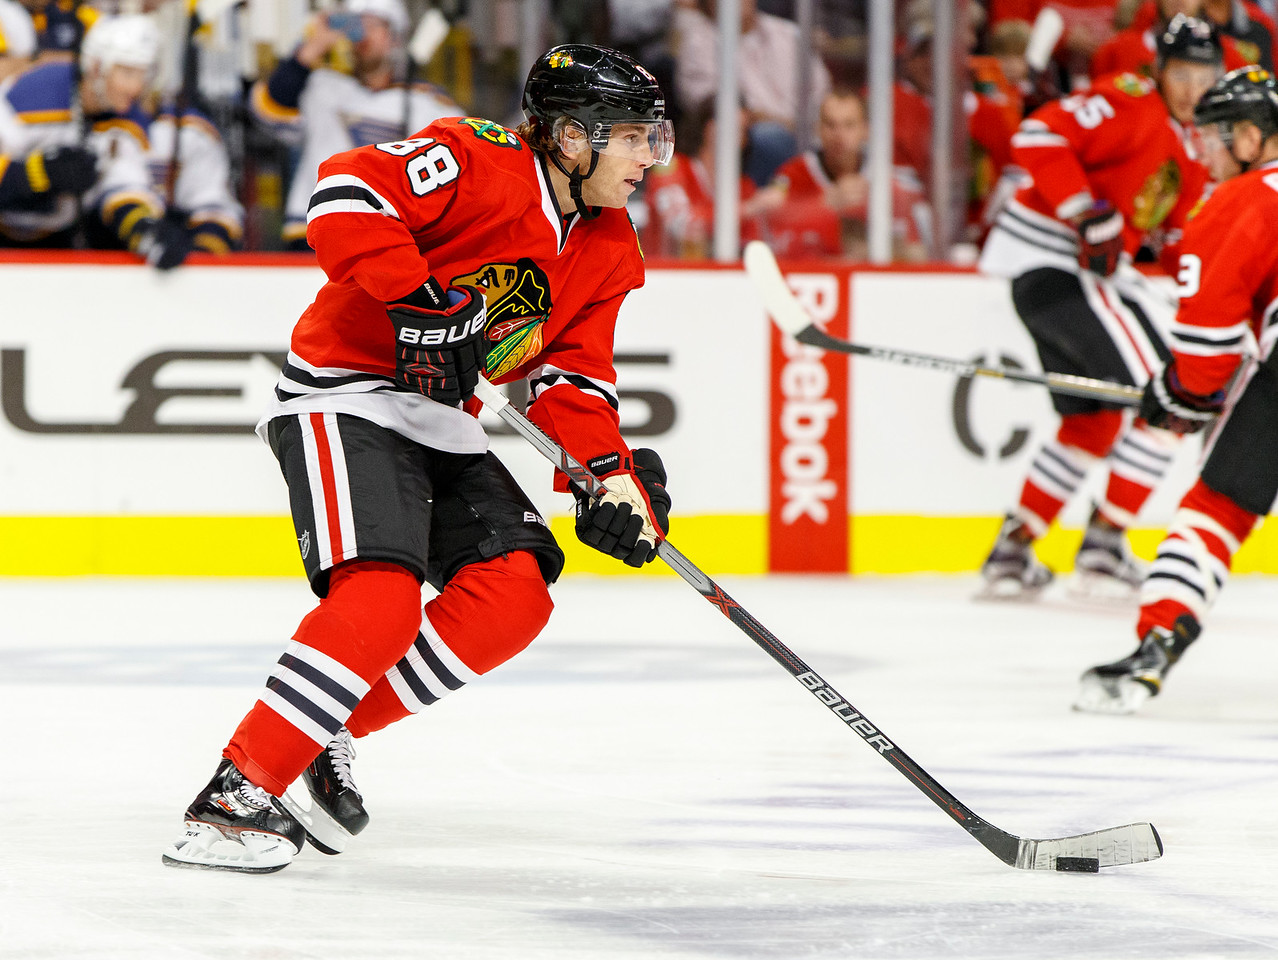 IMAGE: http://www.reicherstudios.com/Sports/HockeyPhotos/Chicago-Blackhawks-vs-St-Louis/i-dLvJcpr/0/X2/CC6Q4451_4598-X2.jpg